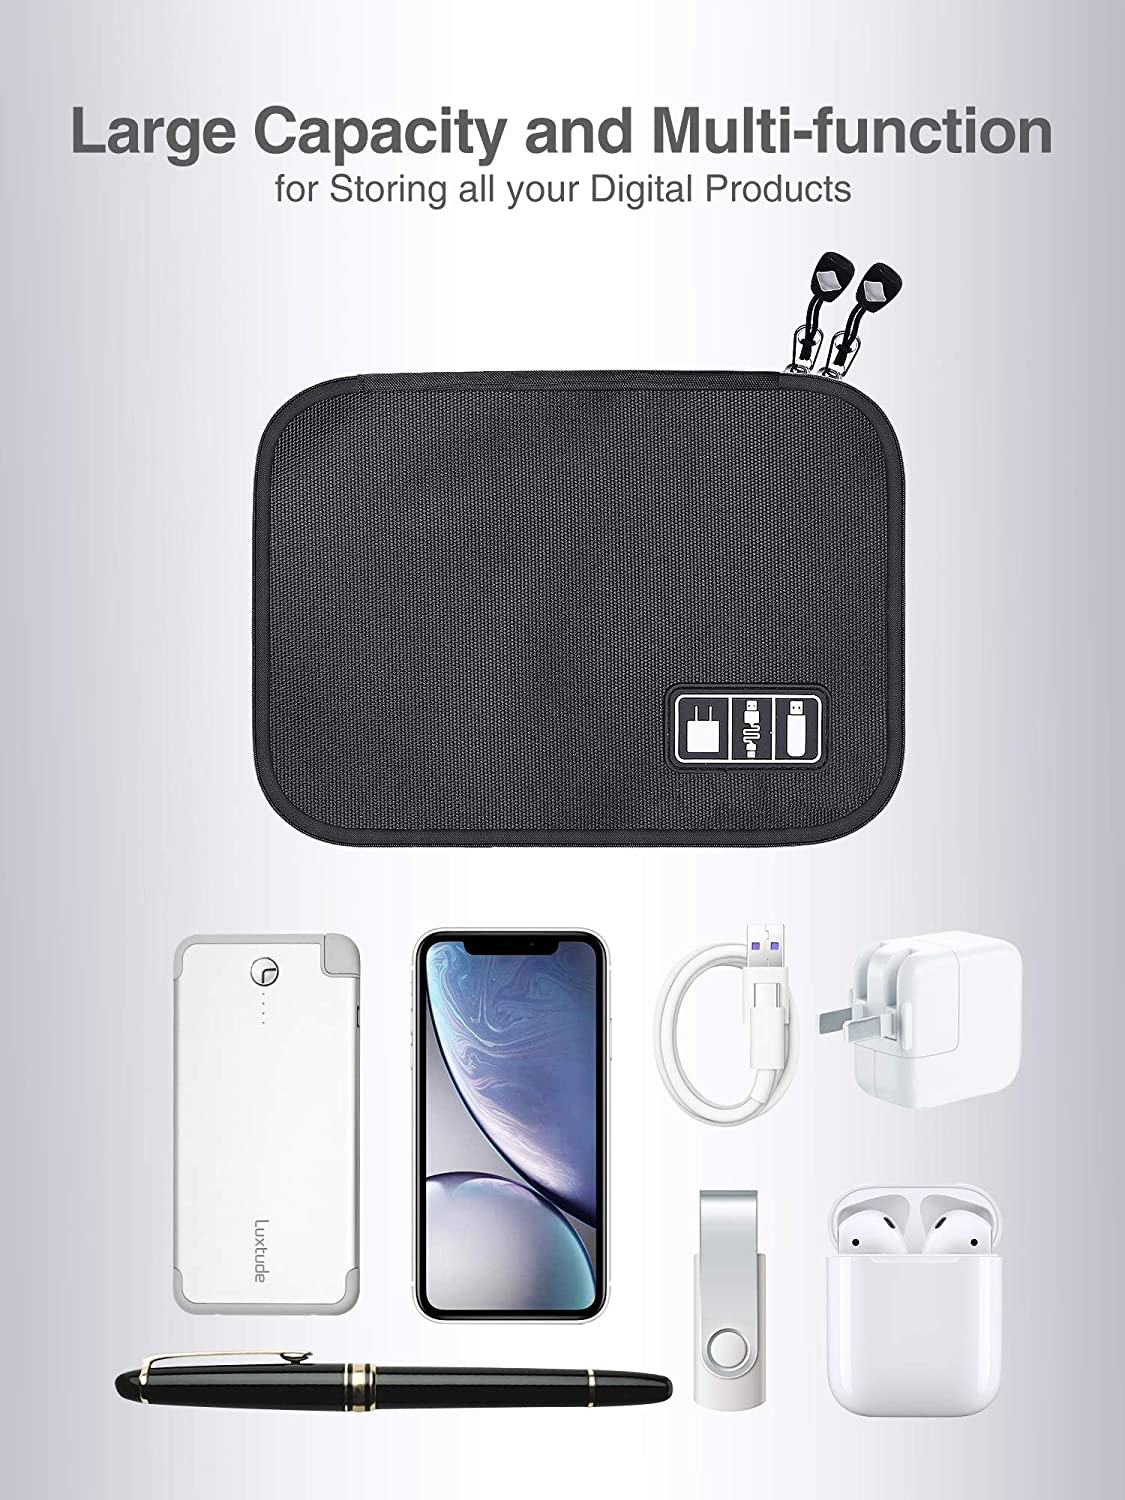 Portable Cord Organizer Compact Cable Organizer Cord Storage and Electronics Accessories Phone//USB//SD//Charger Organizer Black Travel Organizer Bag for Cable Storage Luxtude Electronic Organizer